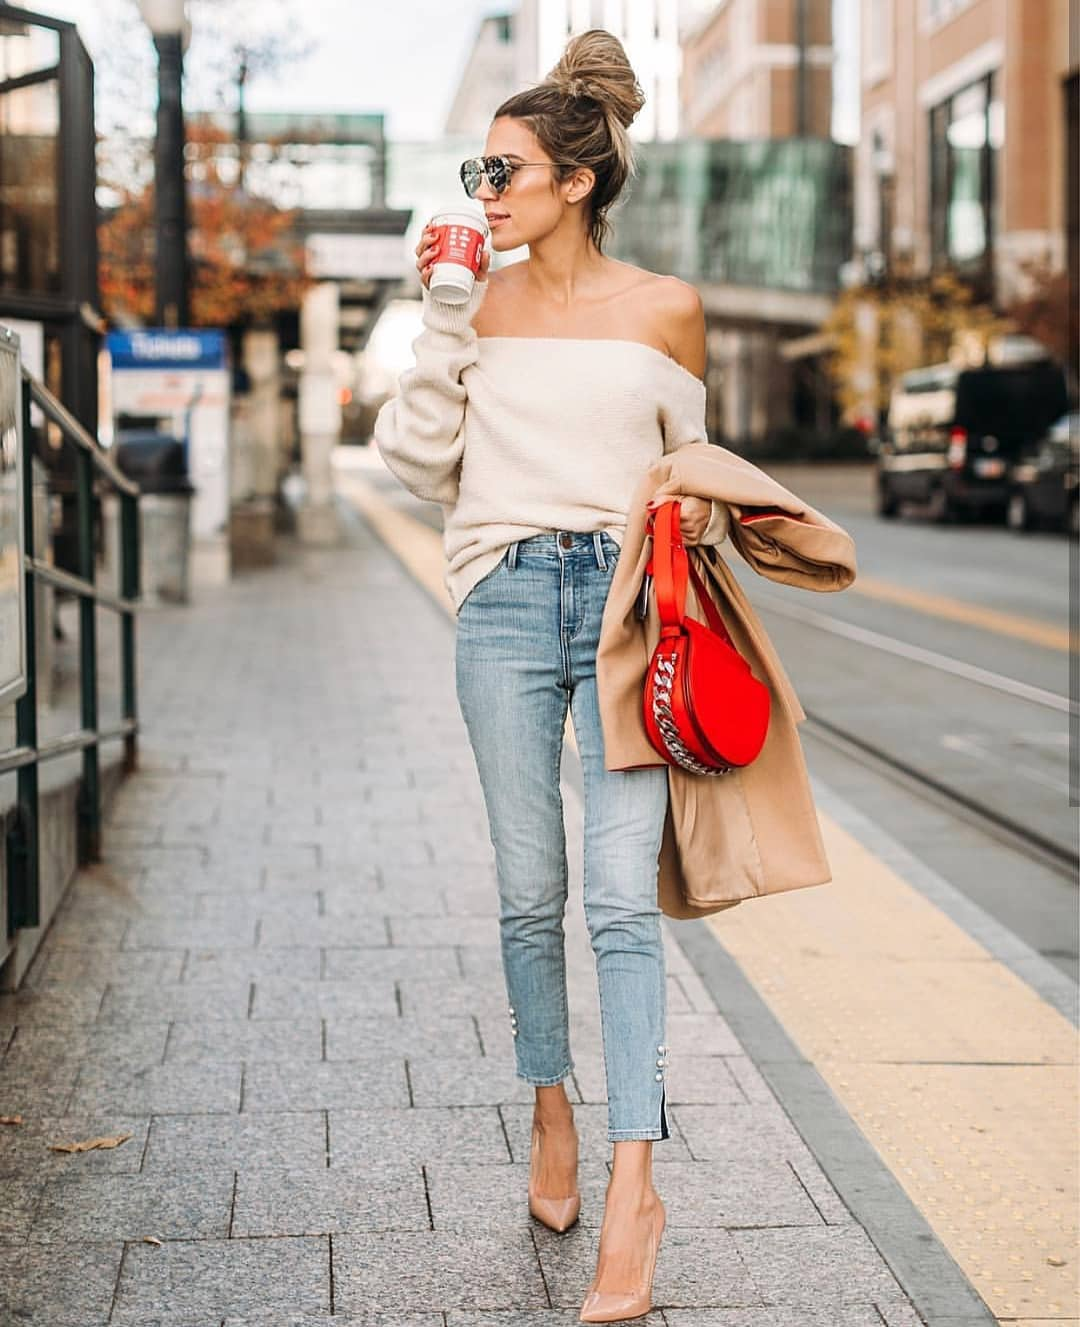 Off Shoulder Cream Sweater And Slim Jeans For Spring Street Walks 2020